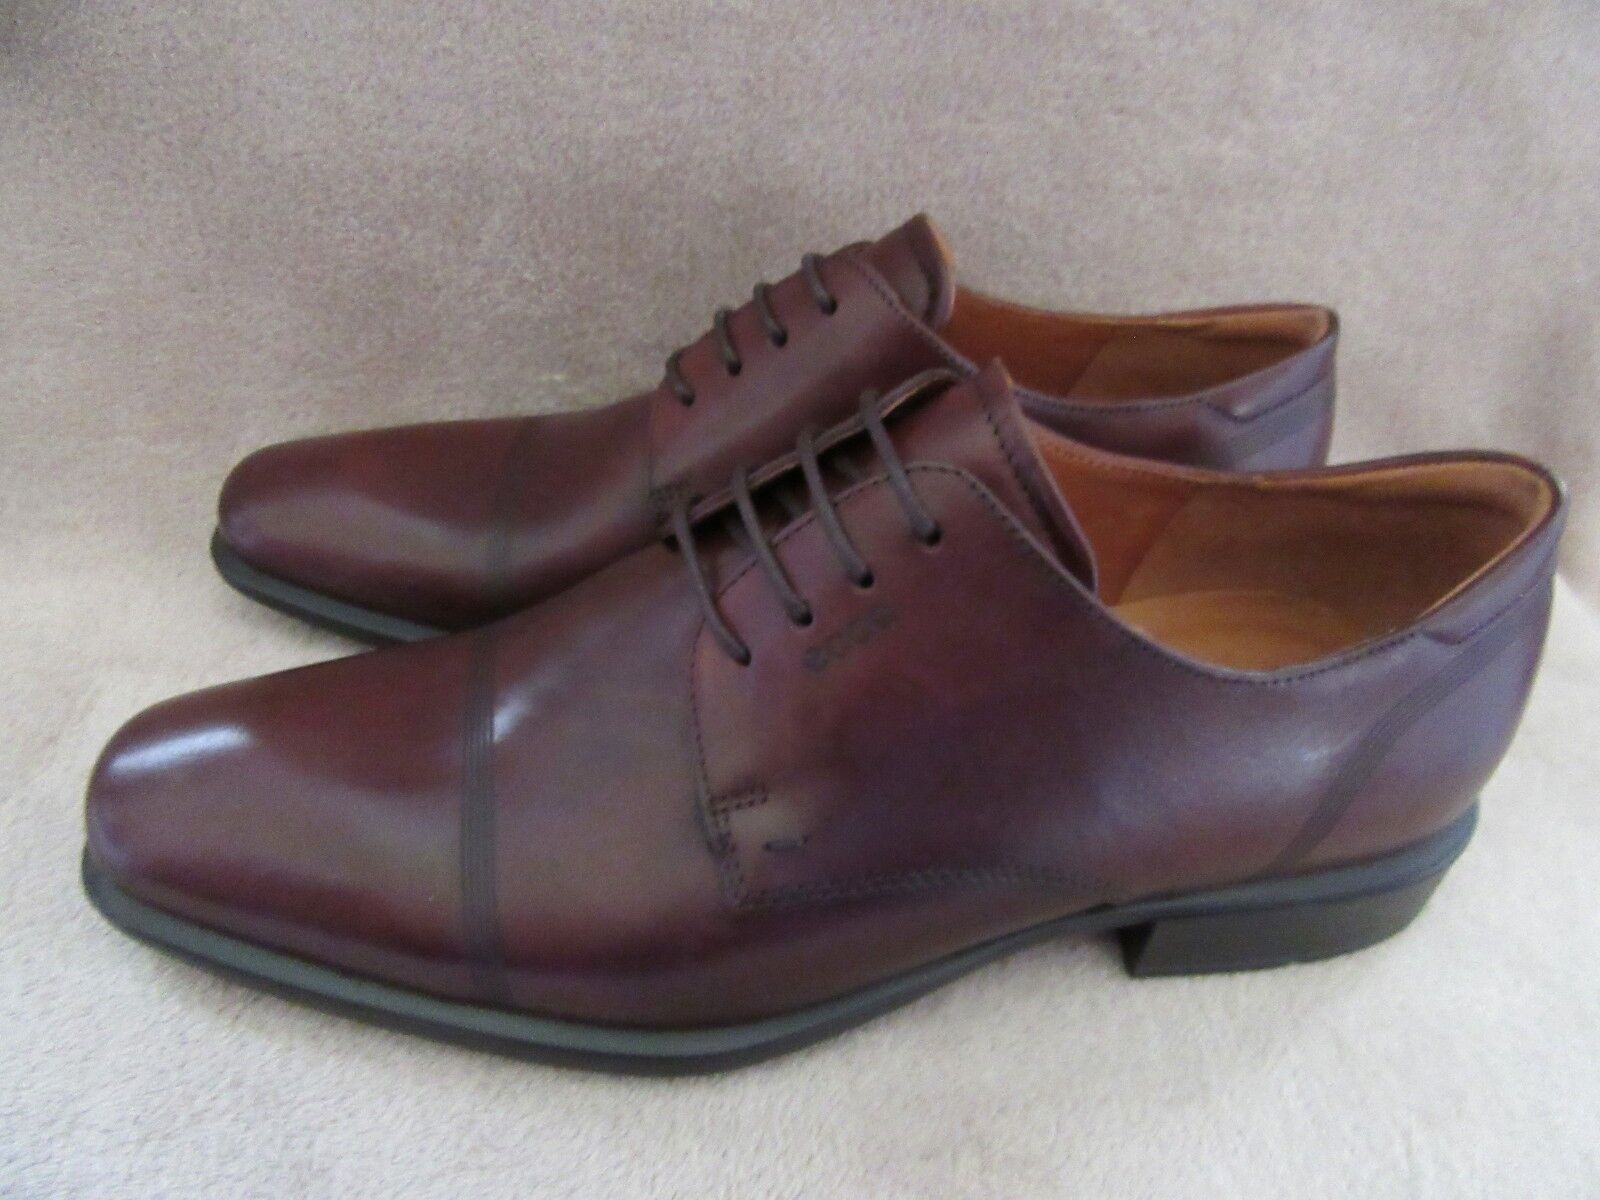 ECCO Uomo Cairo Cap Toe Tie Mink Calf Leather Shoes 10 US 10 Shoes - 10.5 M EUR 44 NWB 1ec72e